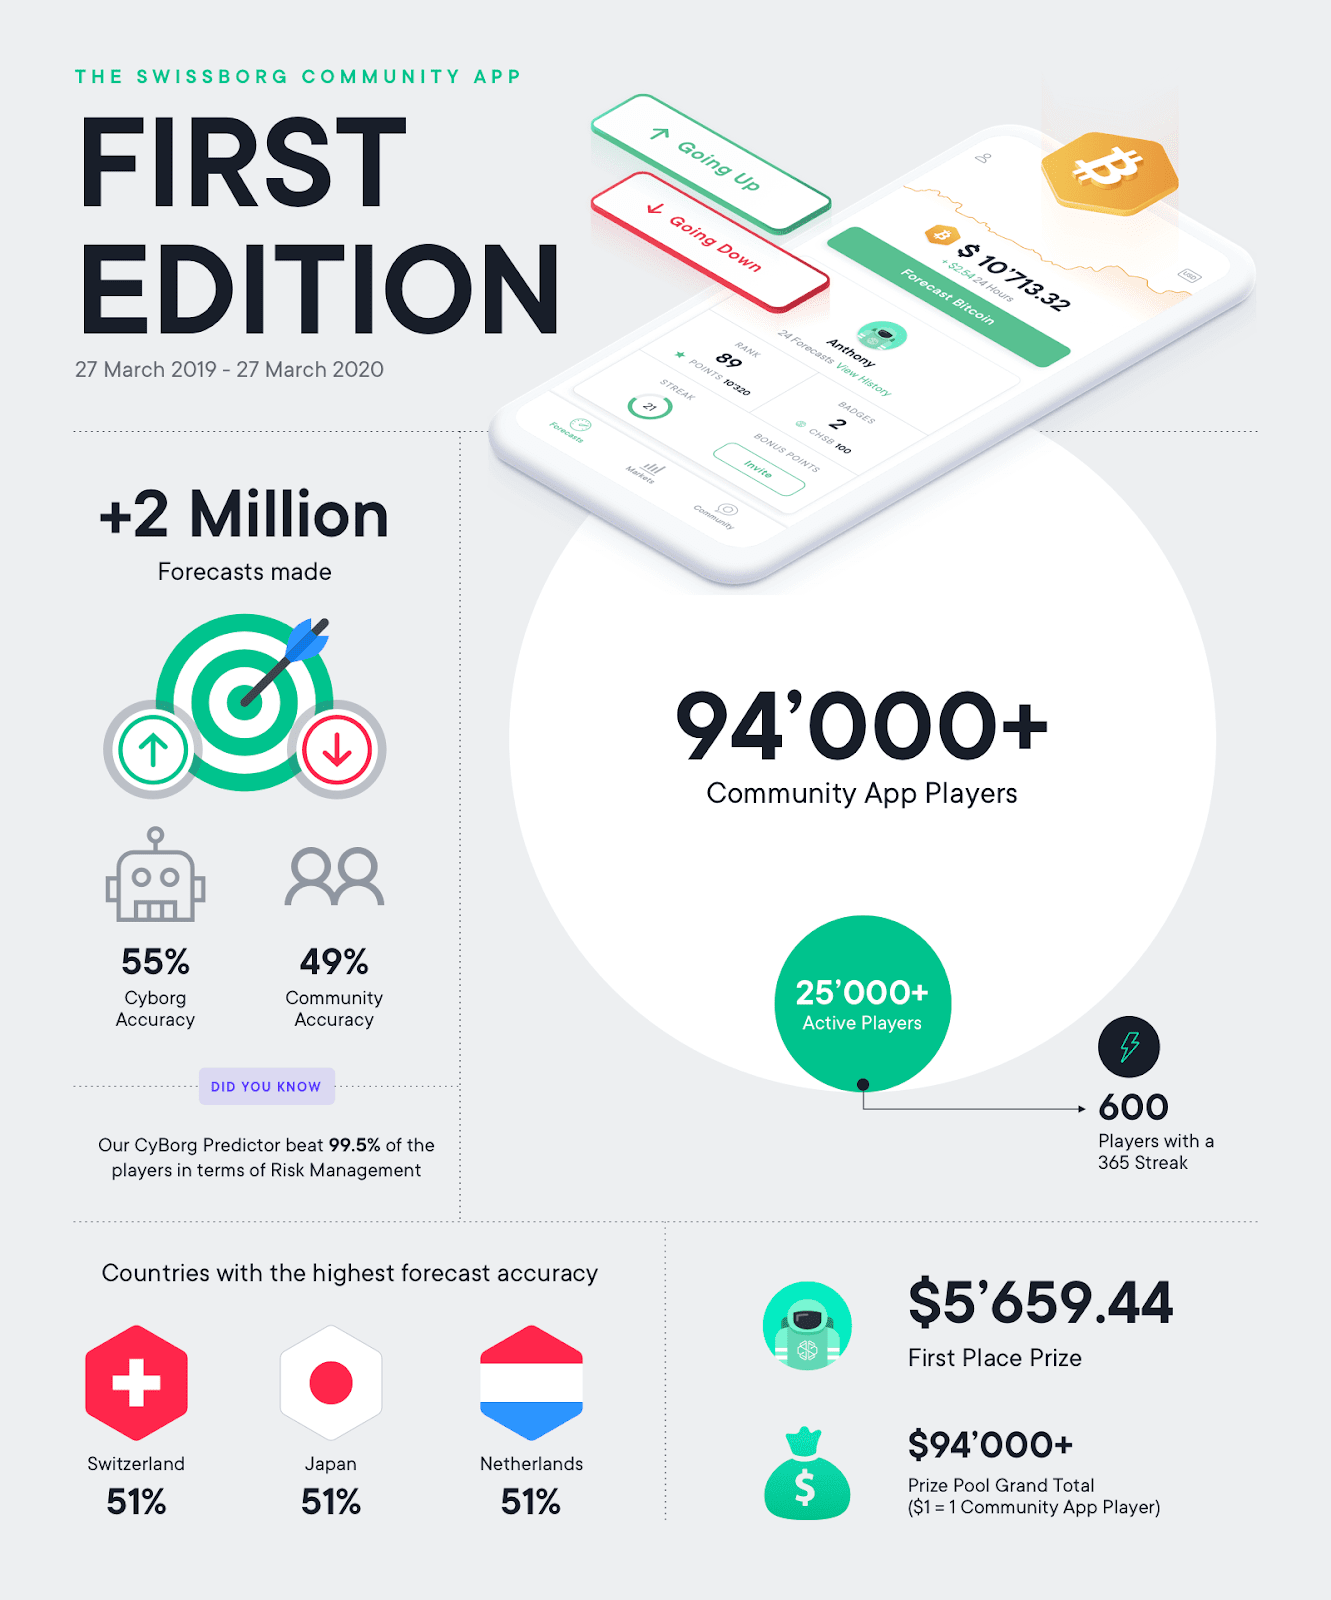 SwissBorg community app first edition metrics